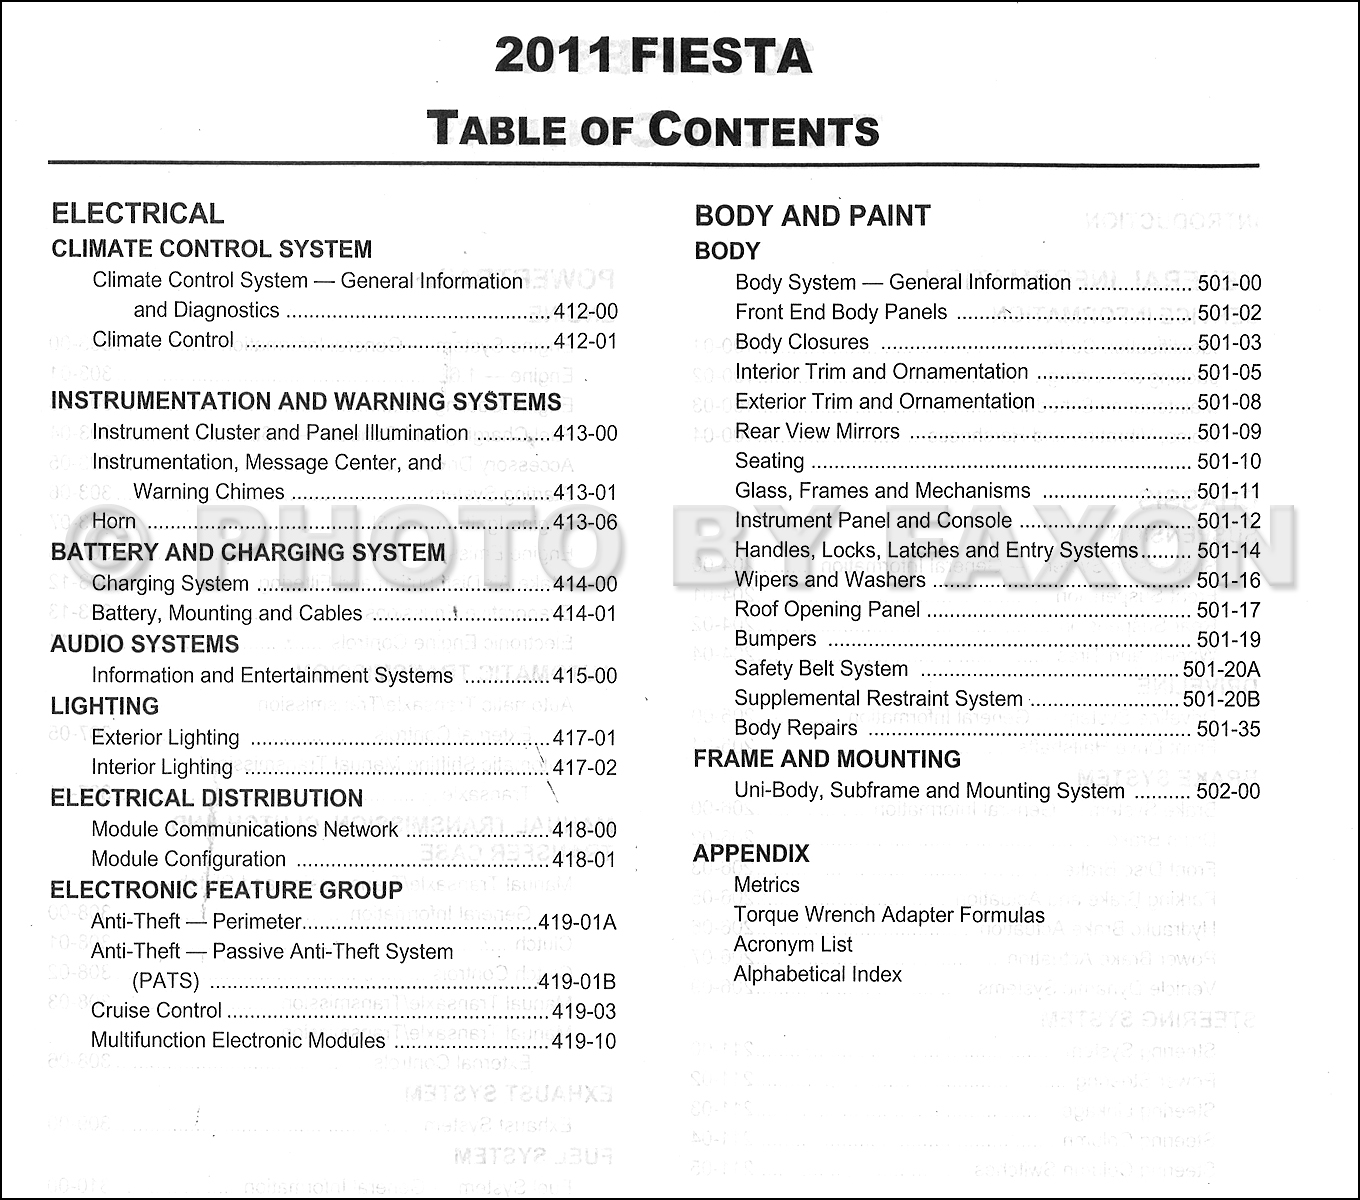 2011 Ford Fiesta Repair Shop Manual Original · Table of Contents Page 1 ·  Table of Contents Page 2